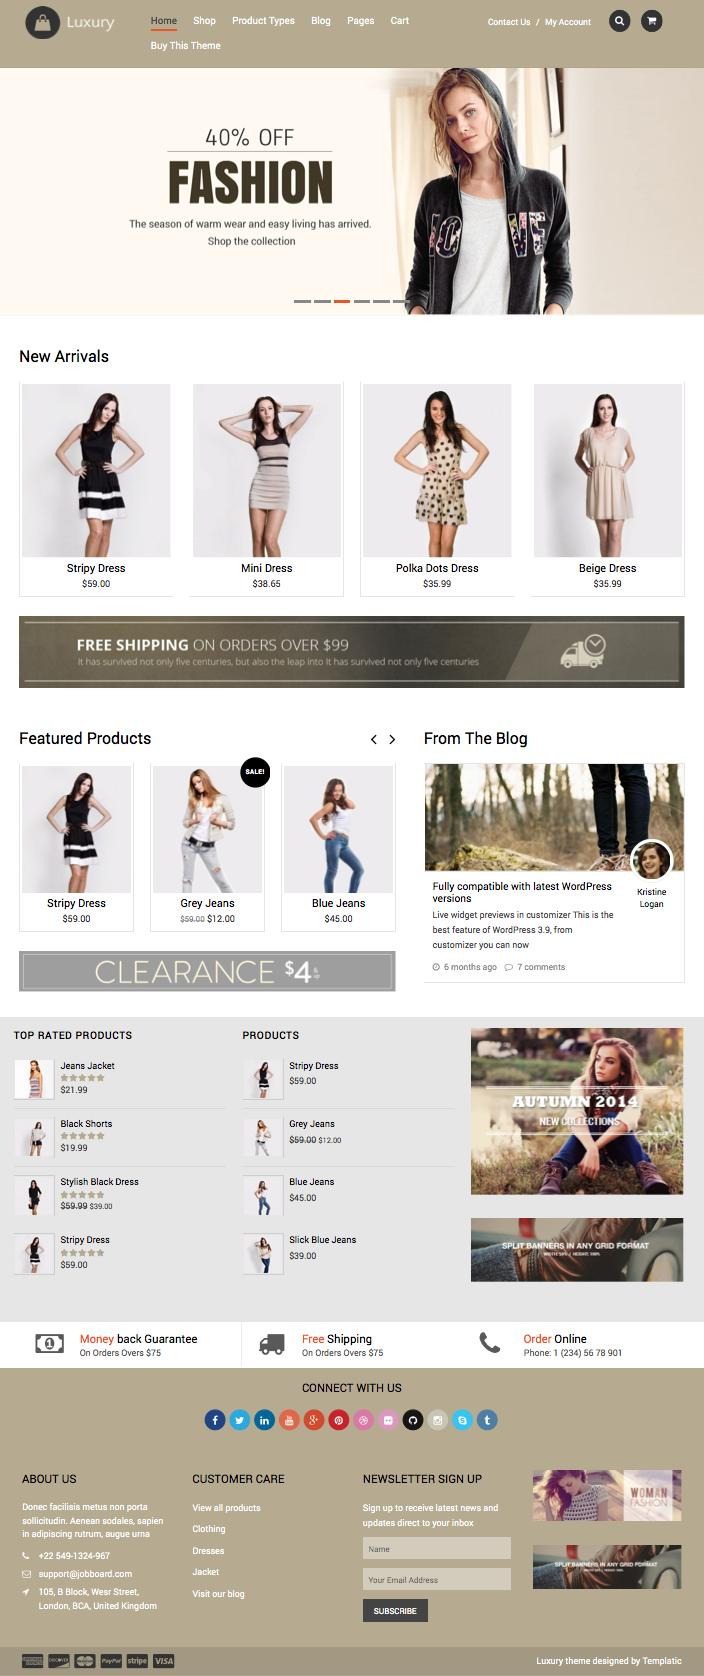 Luxury Responsive WordPress Online Store Theme